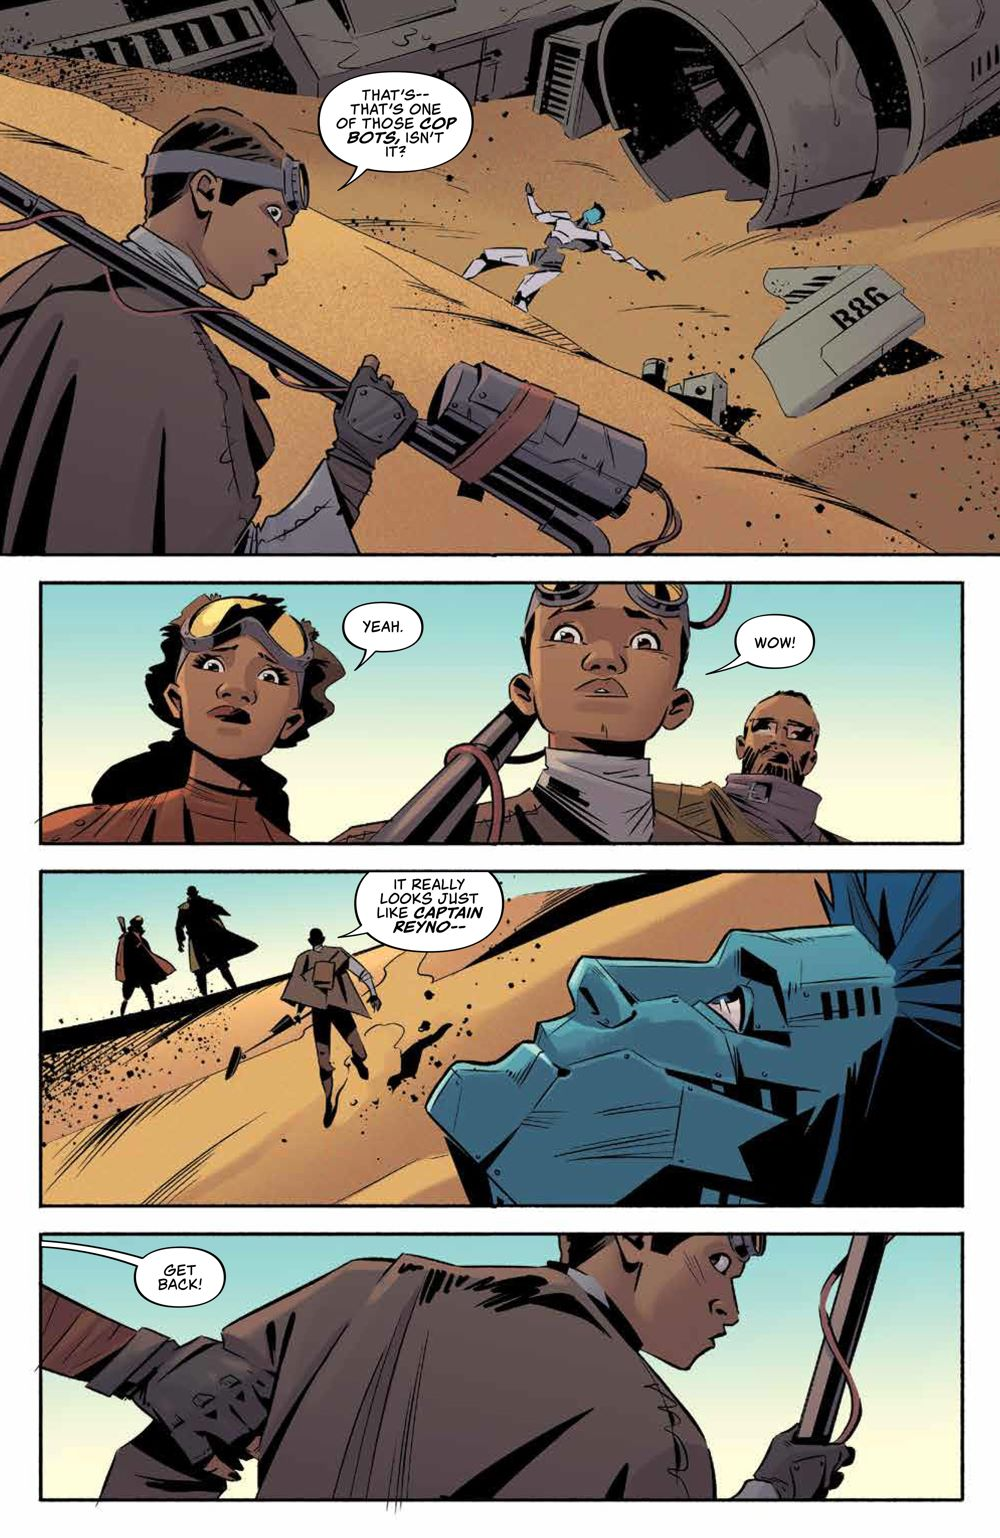 Firefly_025_PRESS_5 ComicList Previews: FIREFLY #25